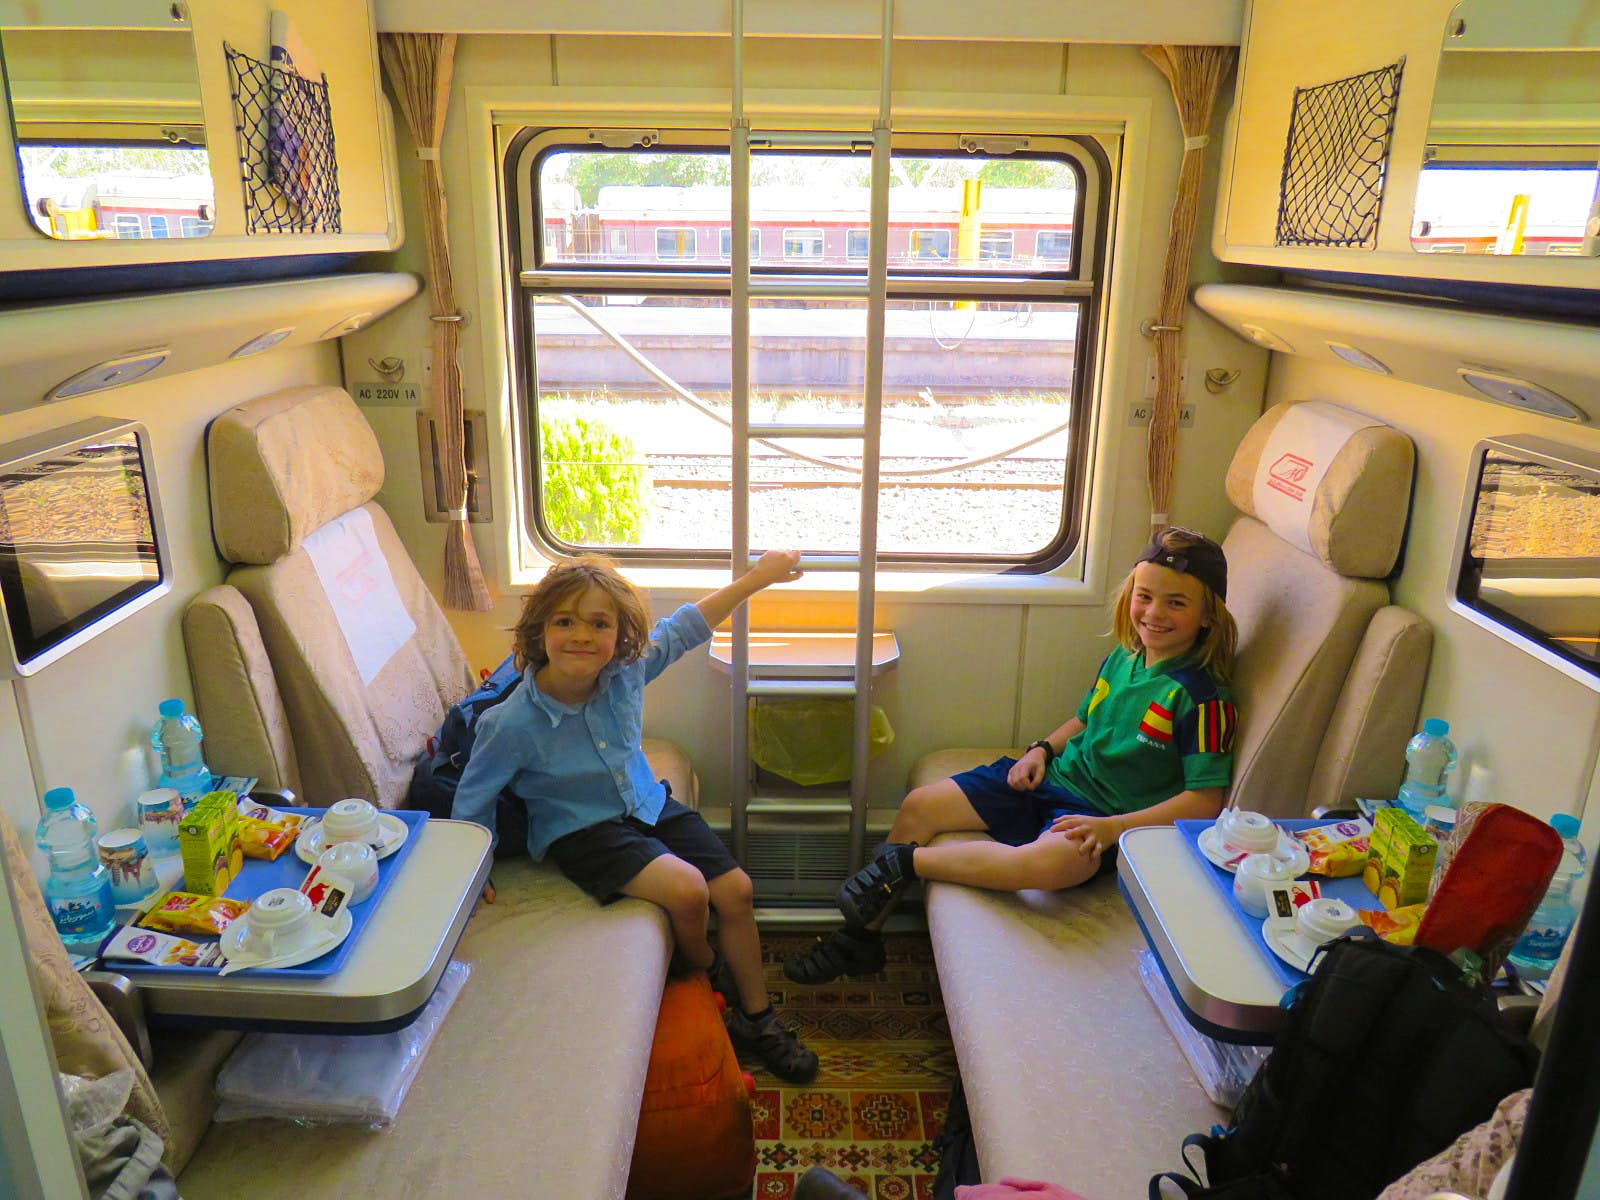 All Aboard The Slumber Express Family Travel By Night Train